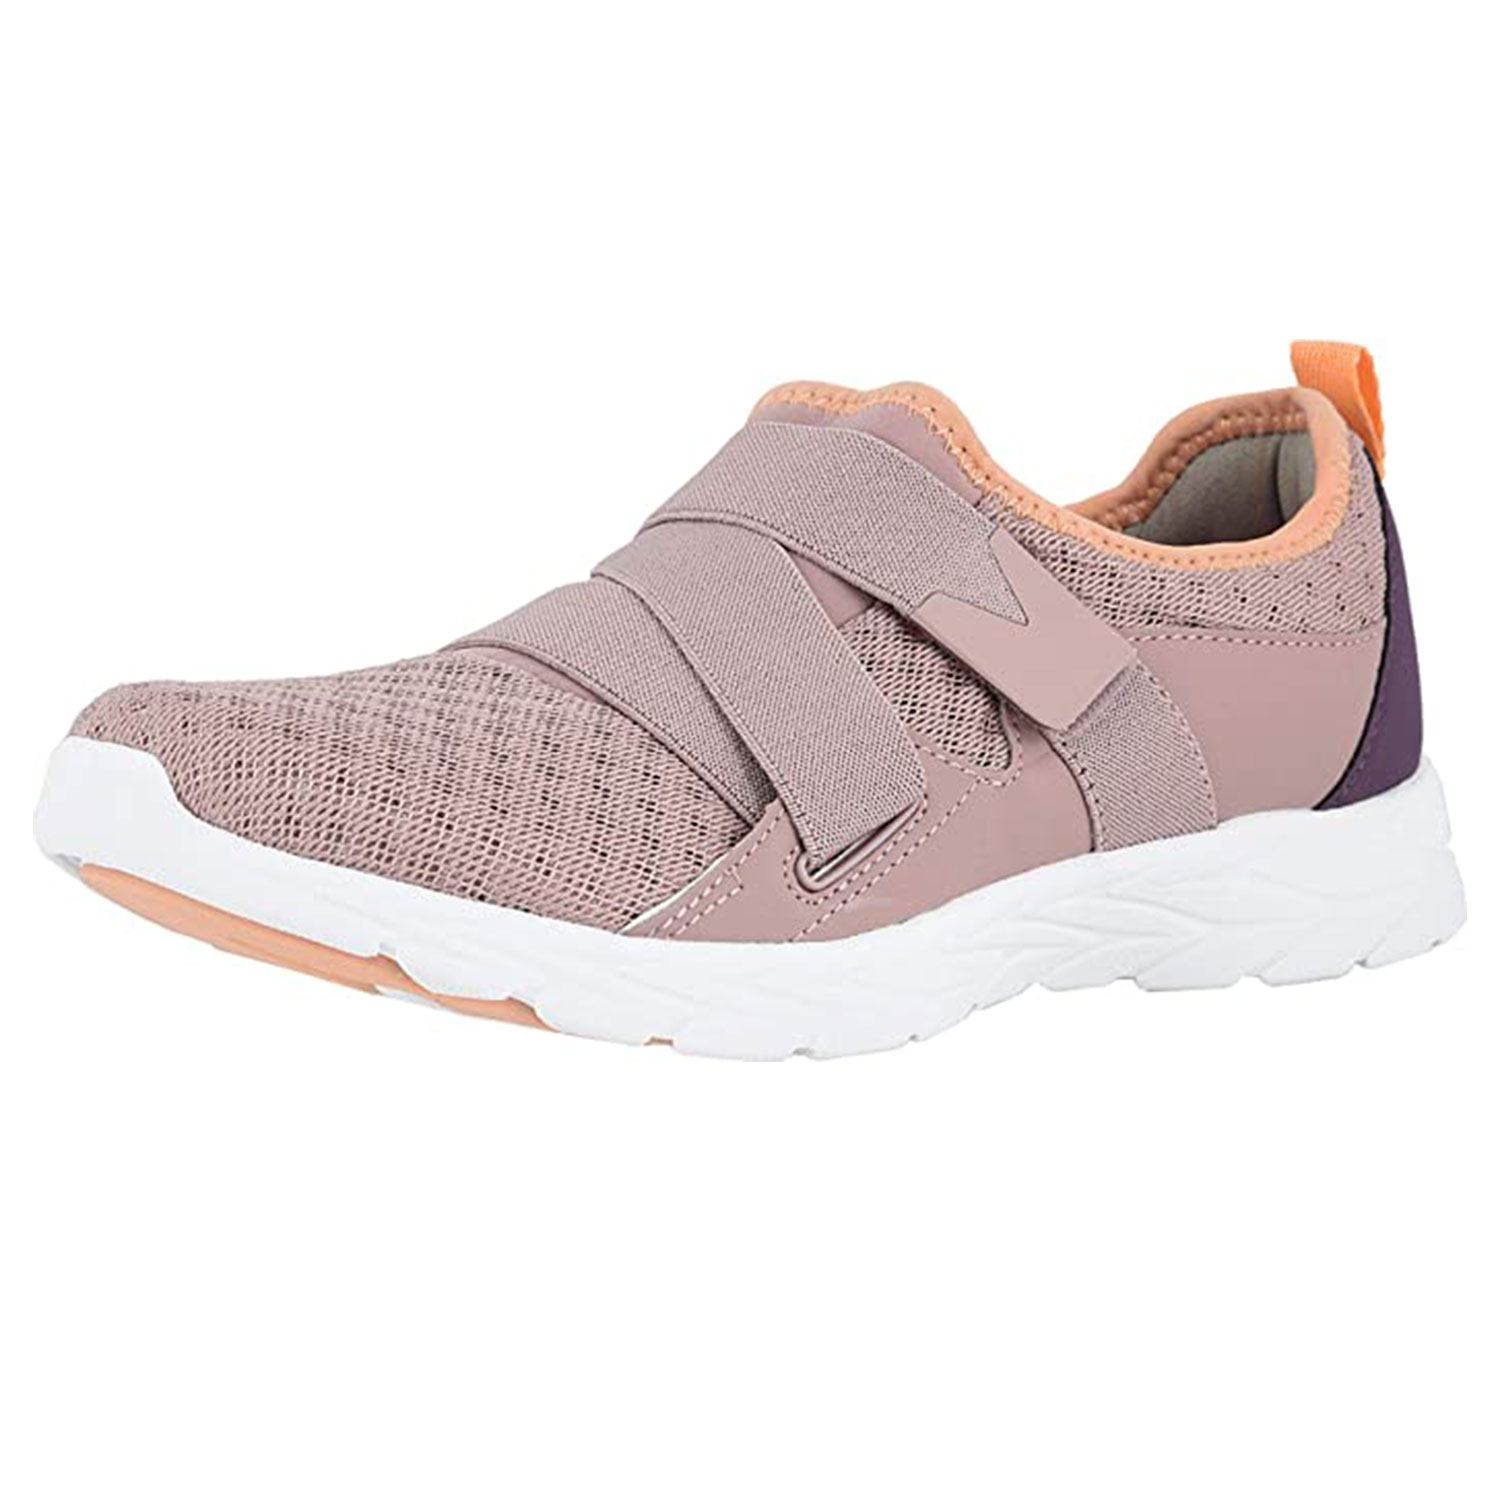 vionic womens brisk walking shoes, blush